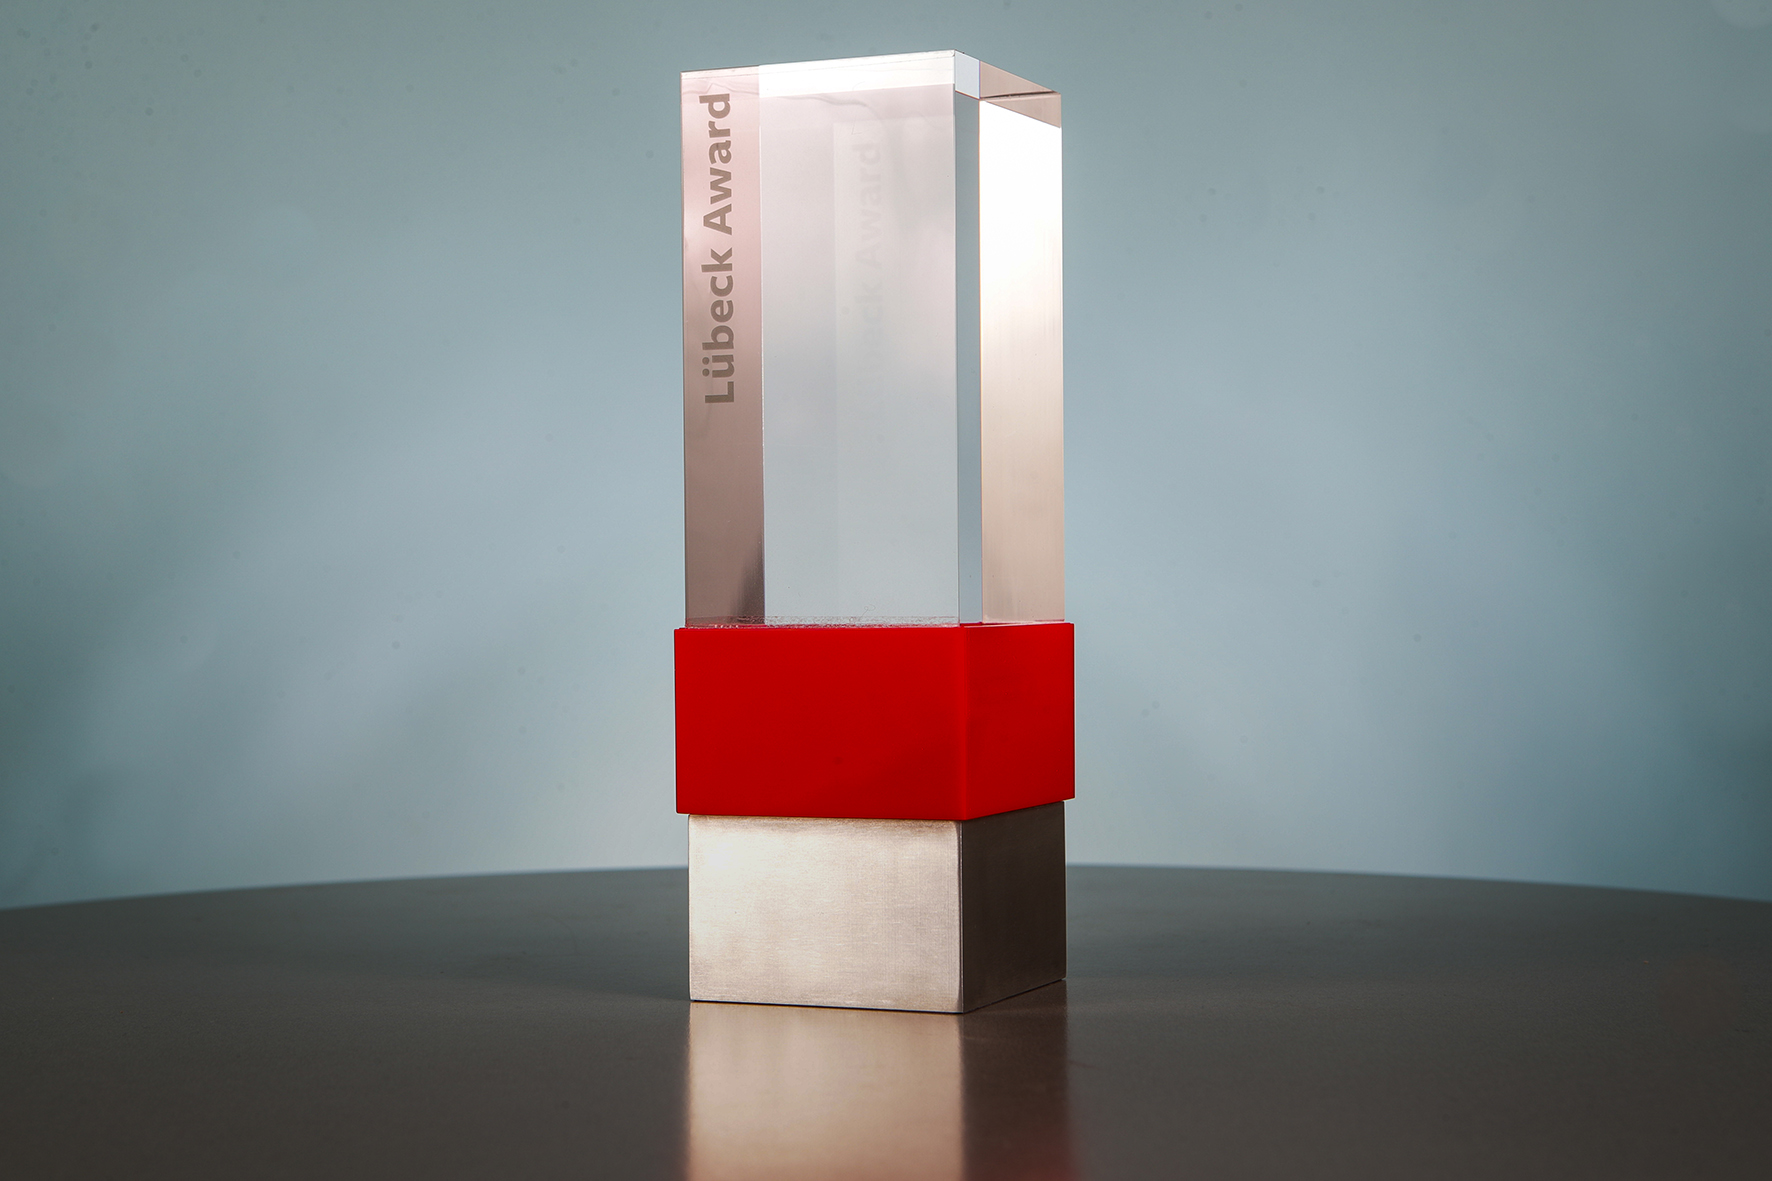 Luebeckaward